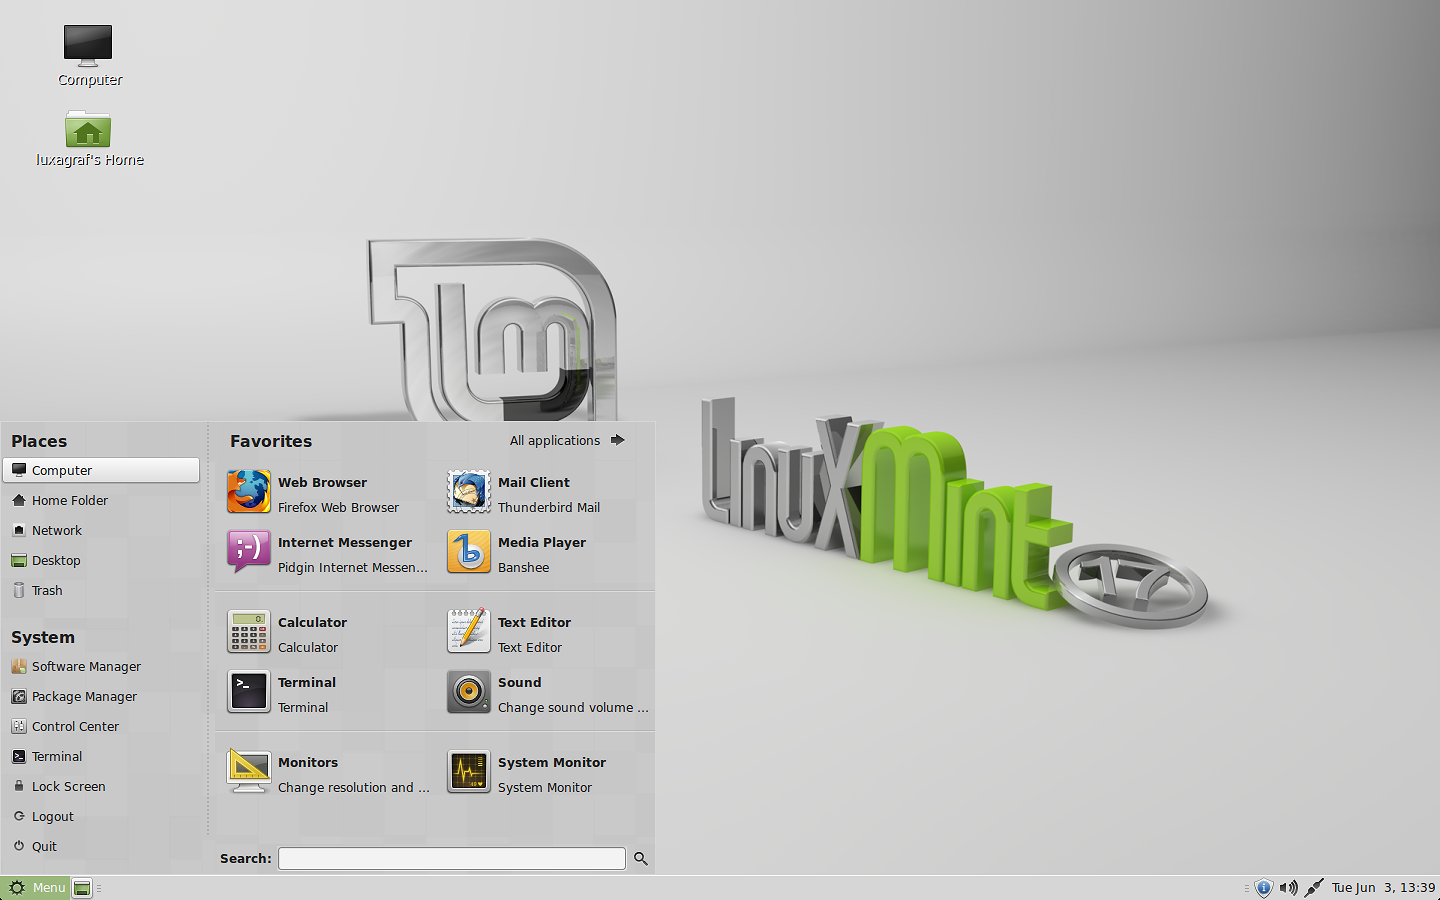 Linux Mint 17 MATE edition.